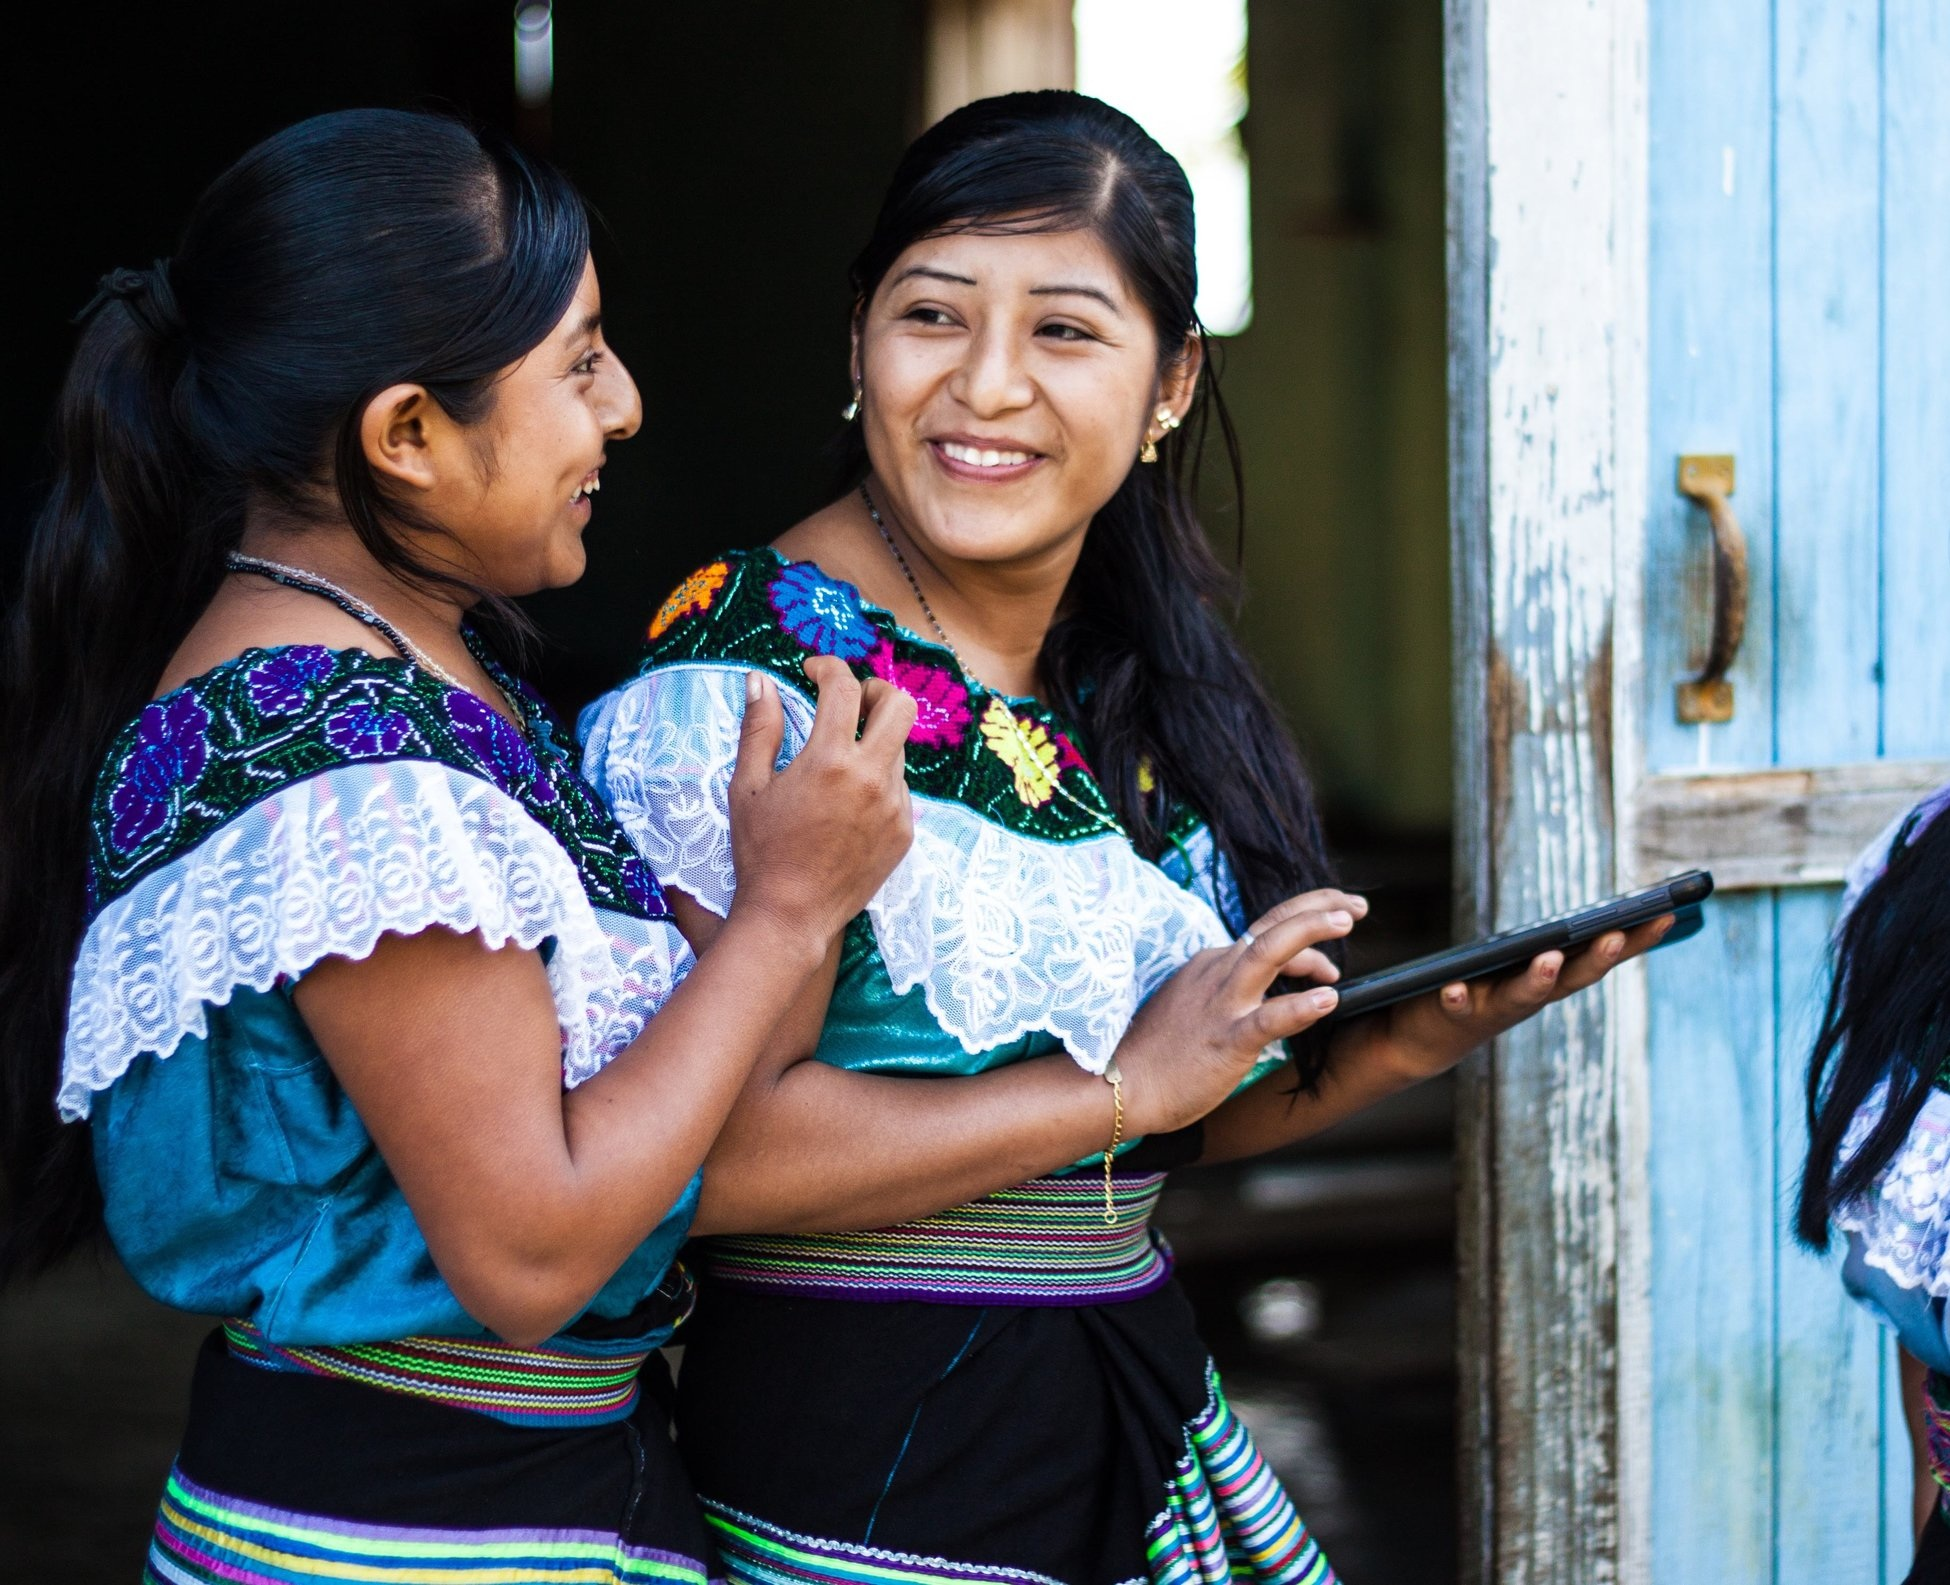 Our Mission - Our mission is to collaborate with indigenous leaders in Chiapas, Mexico to honor and to nurture sustainable agriculture, equitable communities and traditional knowledge.